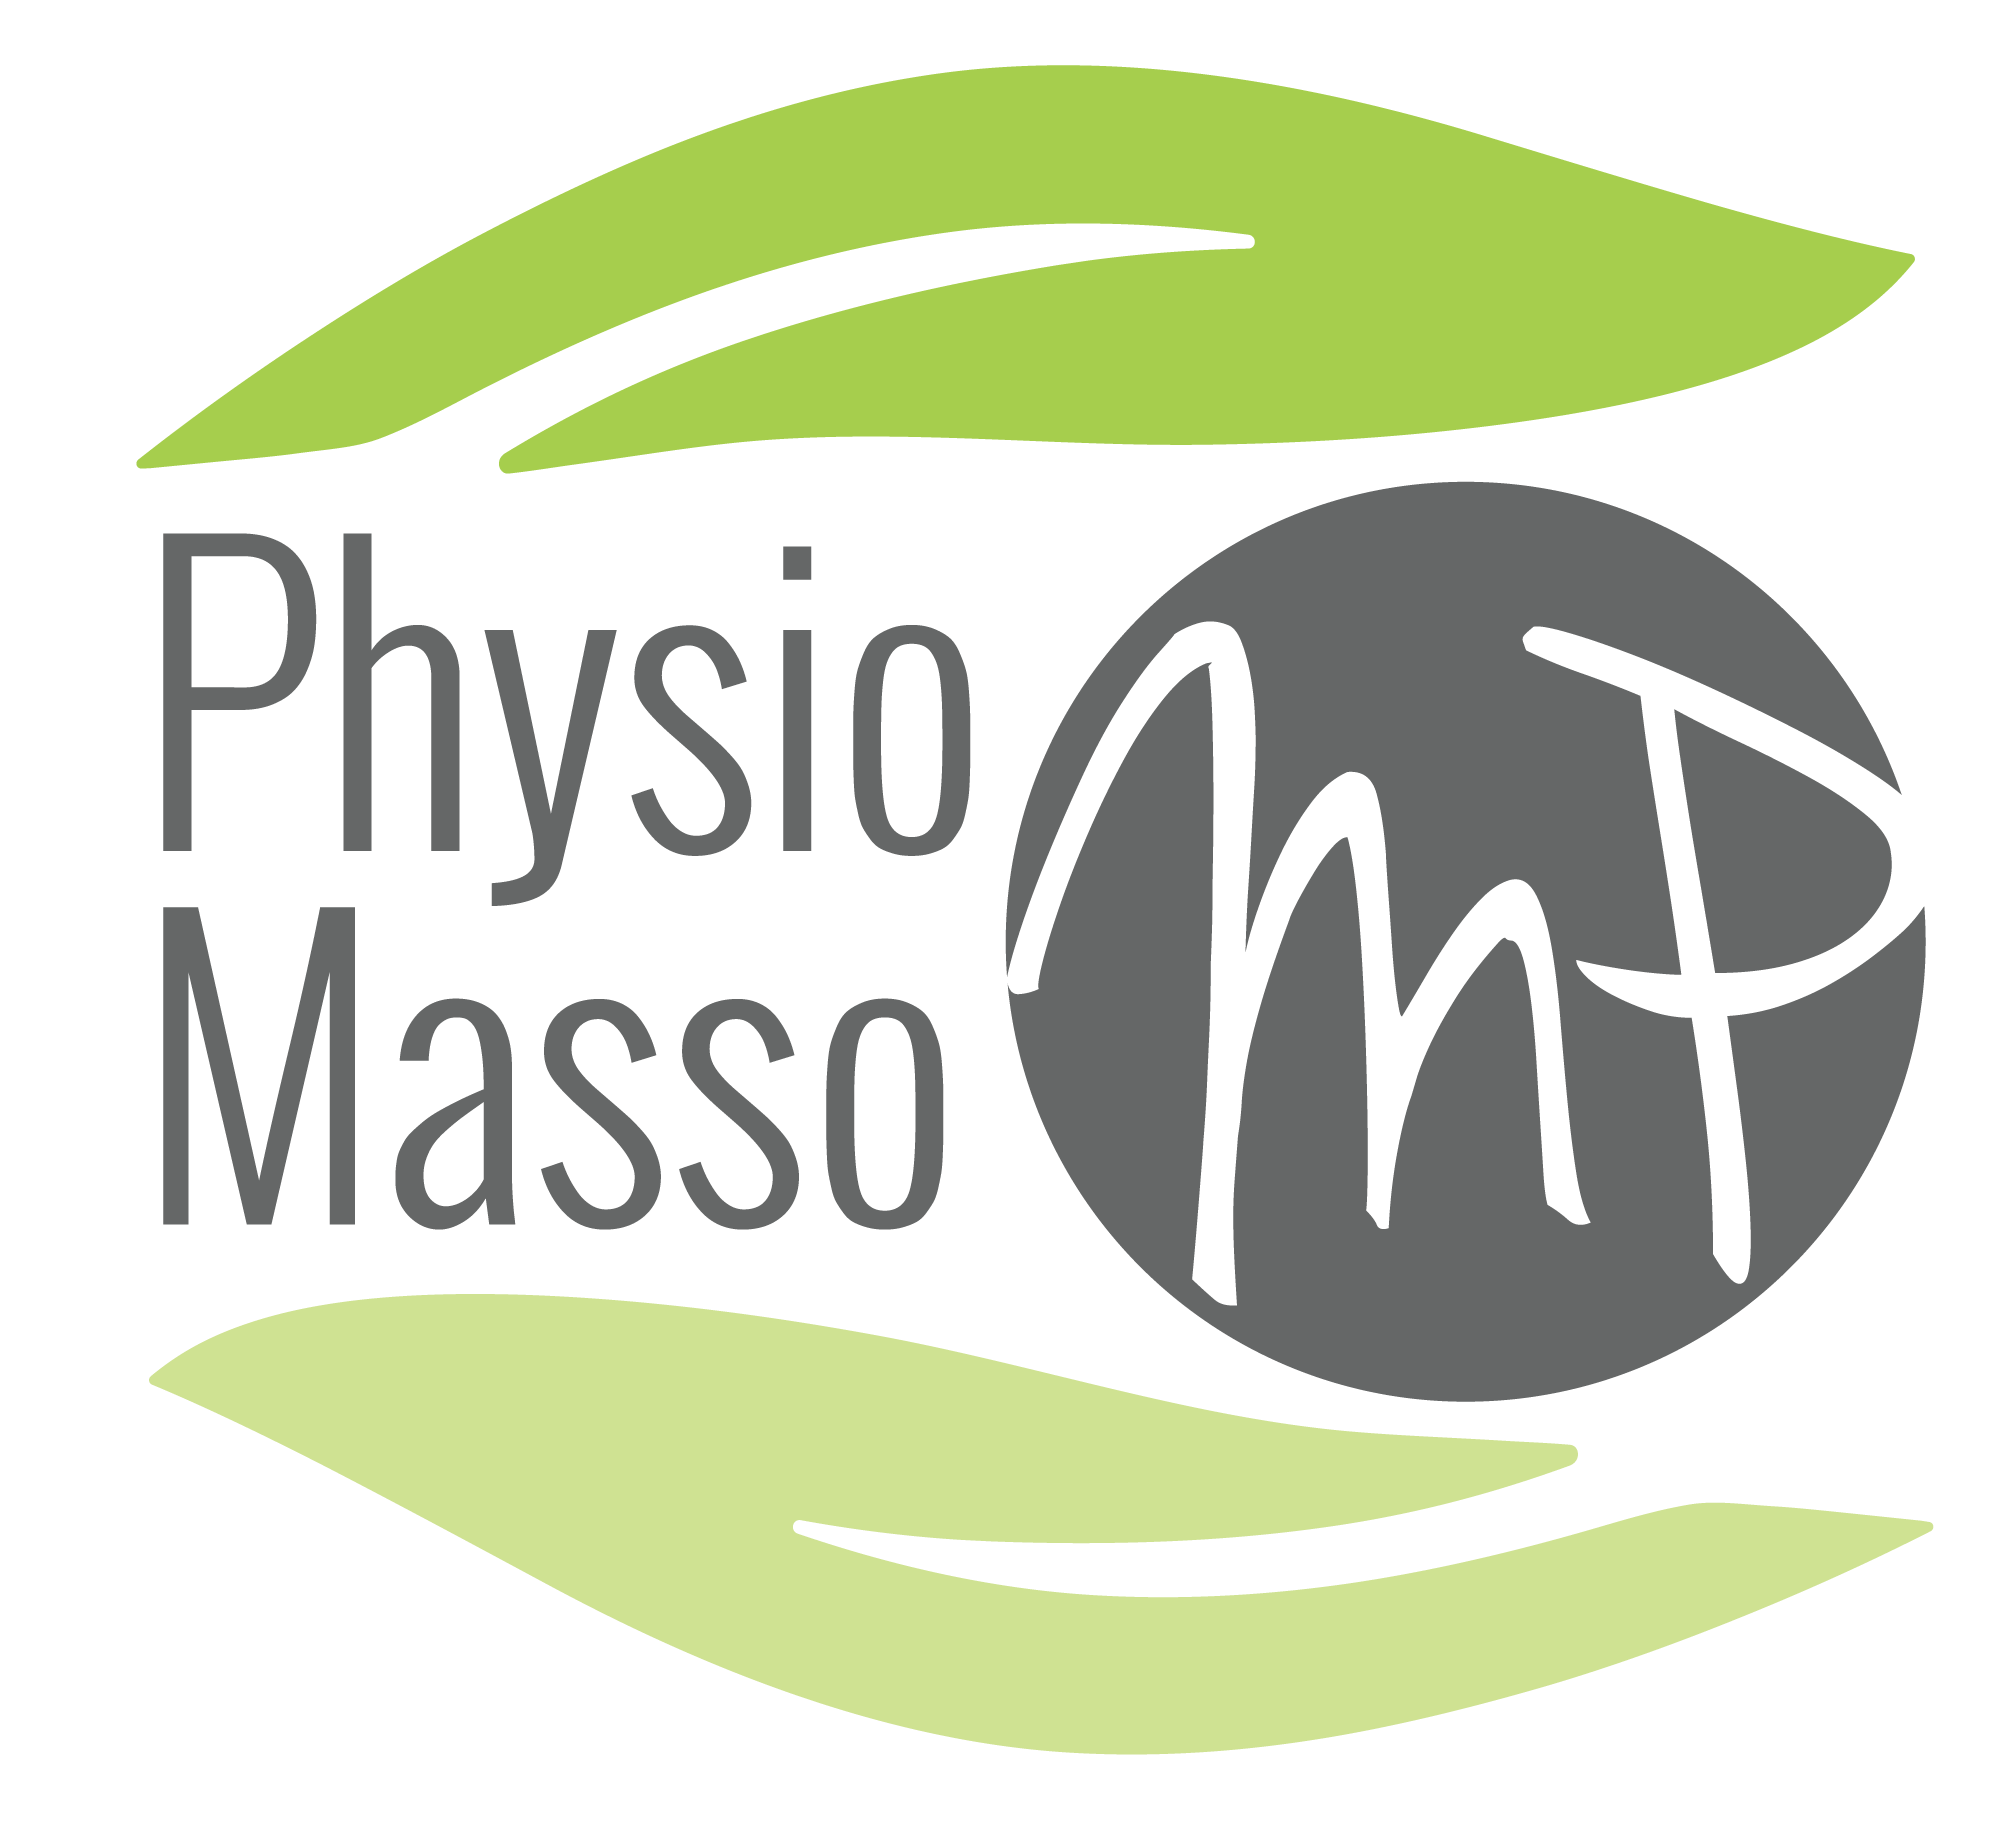 Physio-Masso MP